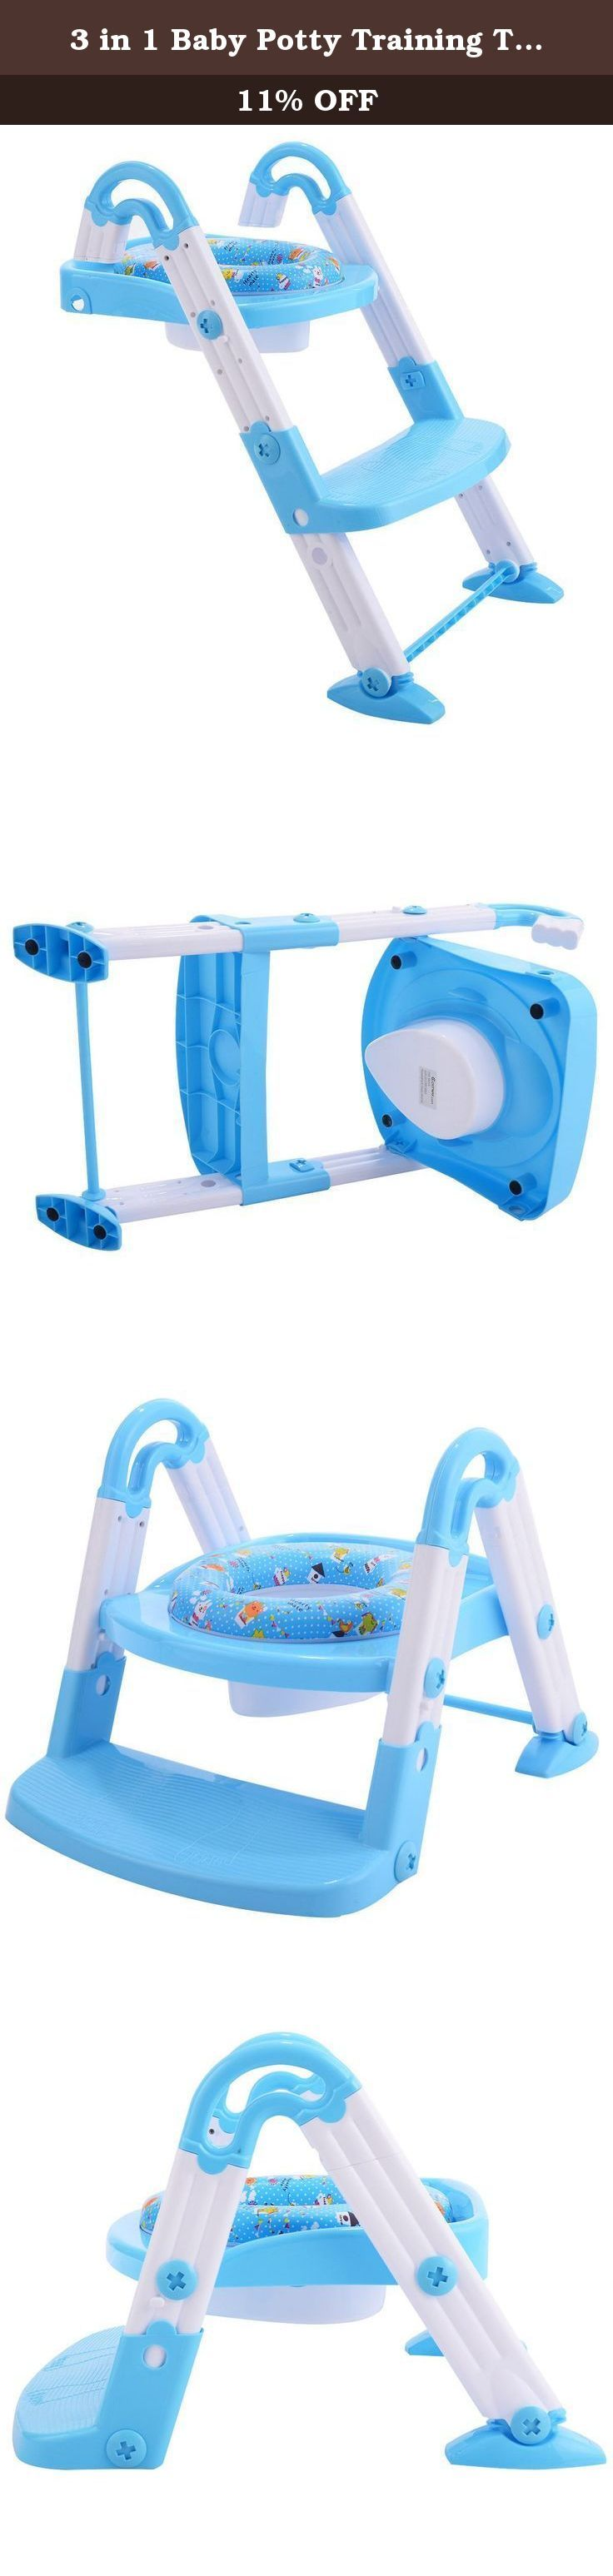 3 in 1 Baby Potty Training Toilet Chair Seat Step Ladder Trainer Toddler Blue. Brand new and high quality Helps child become independent while toilet training A self standing potty seat for toilets that is designed with bright and cheerful colors and will encourage your toddler to want to use their potty seat every day. Made with skid proof, non slip materials Made to use on-the-toilet with a built-in step stool, and a comfortable, toddler toilet seat insert. Made of easy-to-clean...